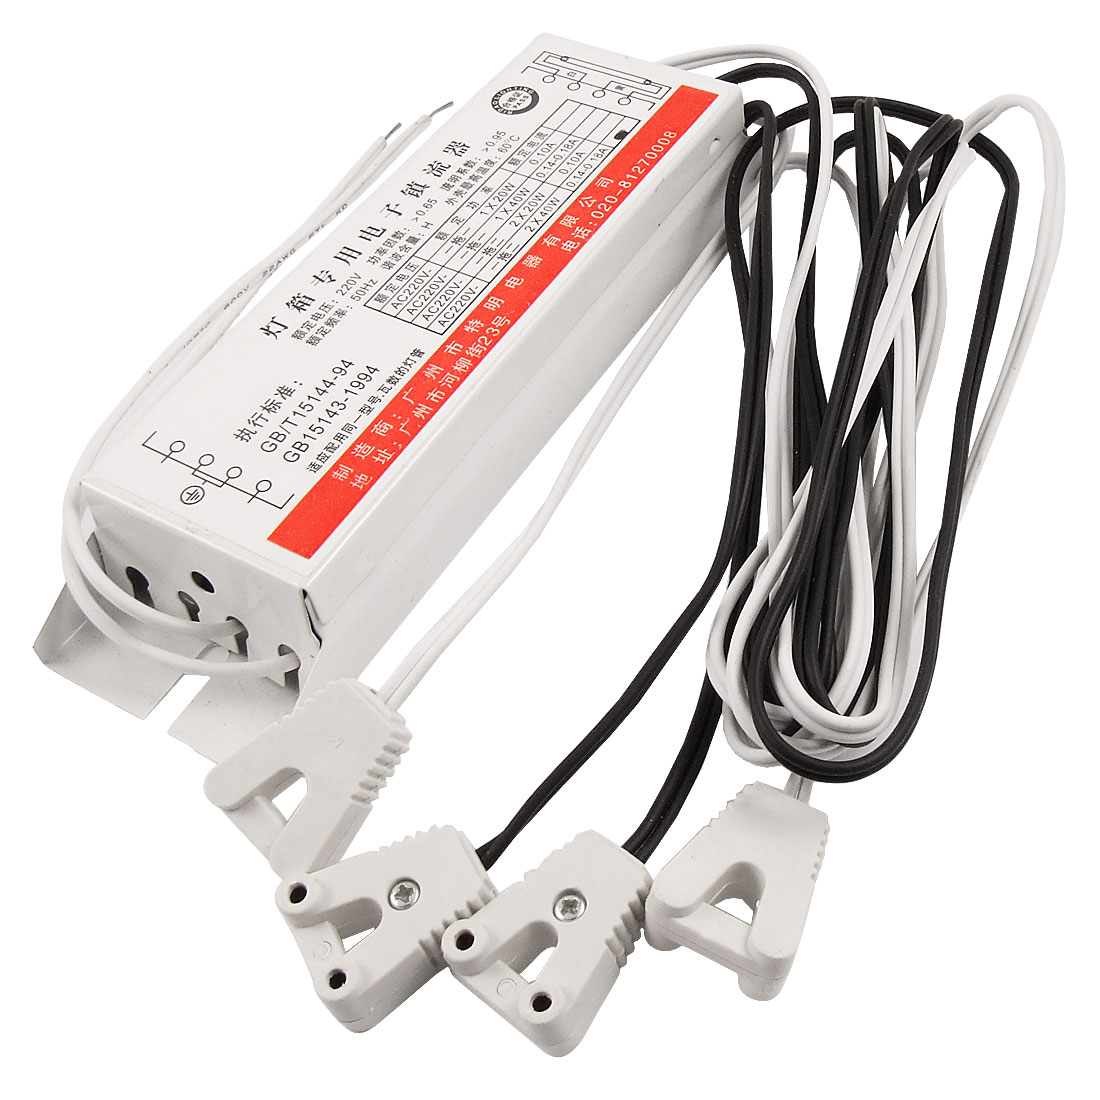 AC 220V 2 x 40W 1 or 2 Fluorescent Lamp Light Electronic Ballast